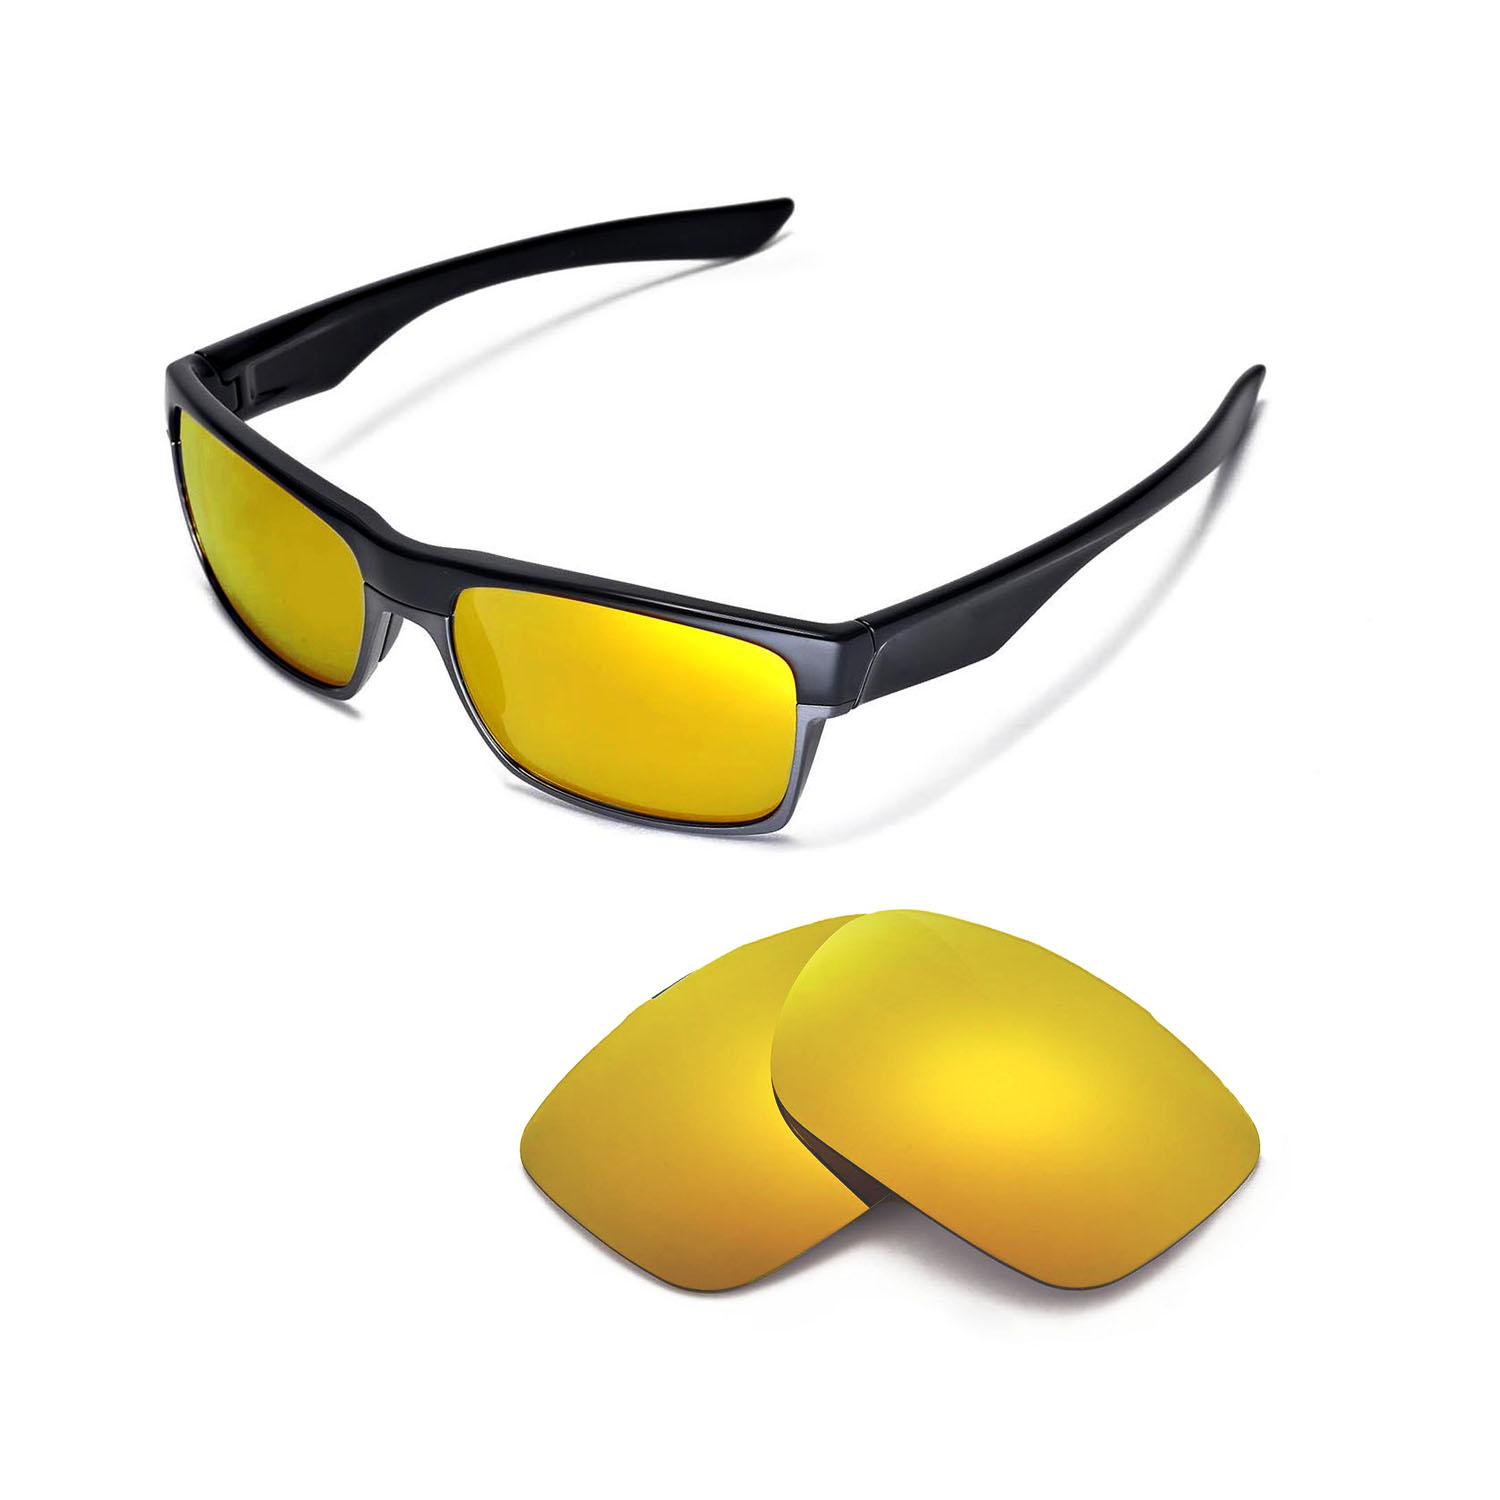 cd48591f9a Details about Walleva Polarized 24K Gold Replacement Lenses for Oakley  TwoFace Sunglasses